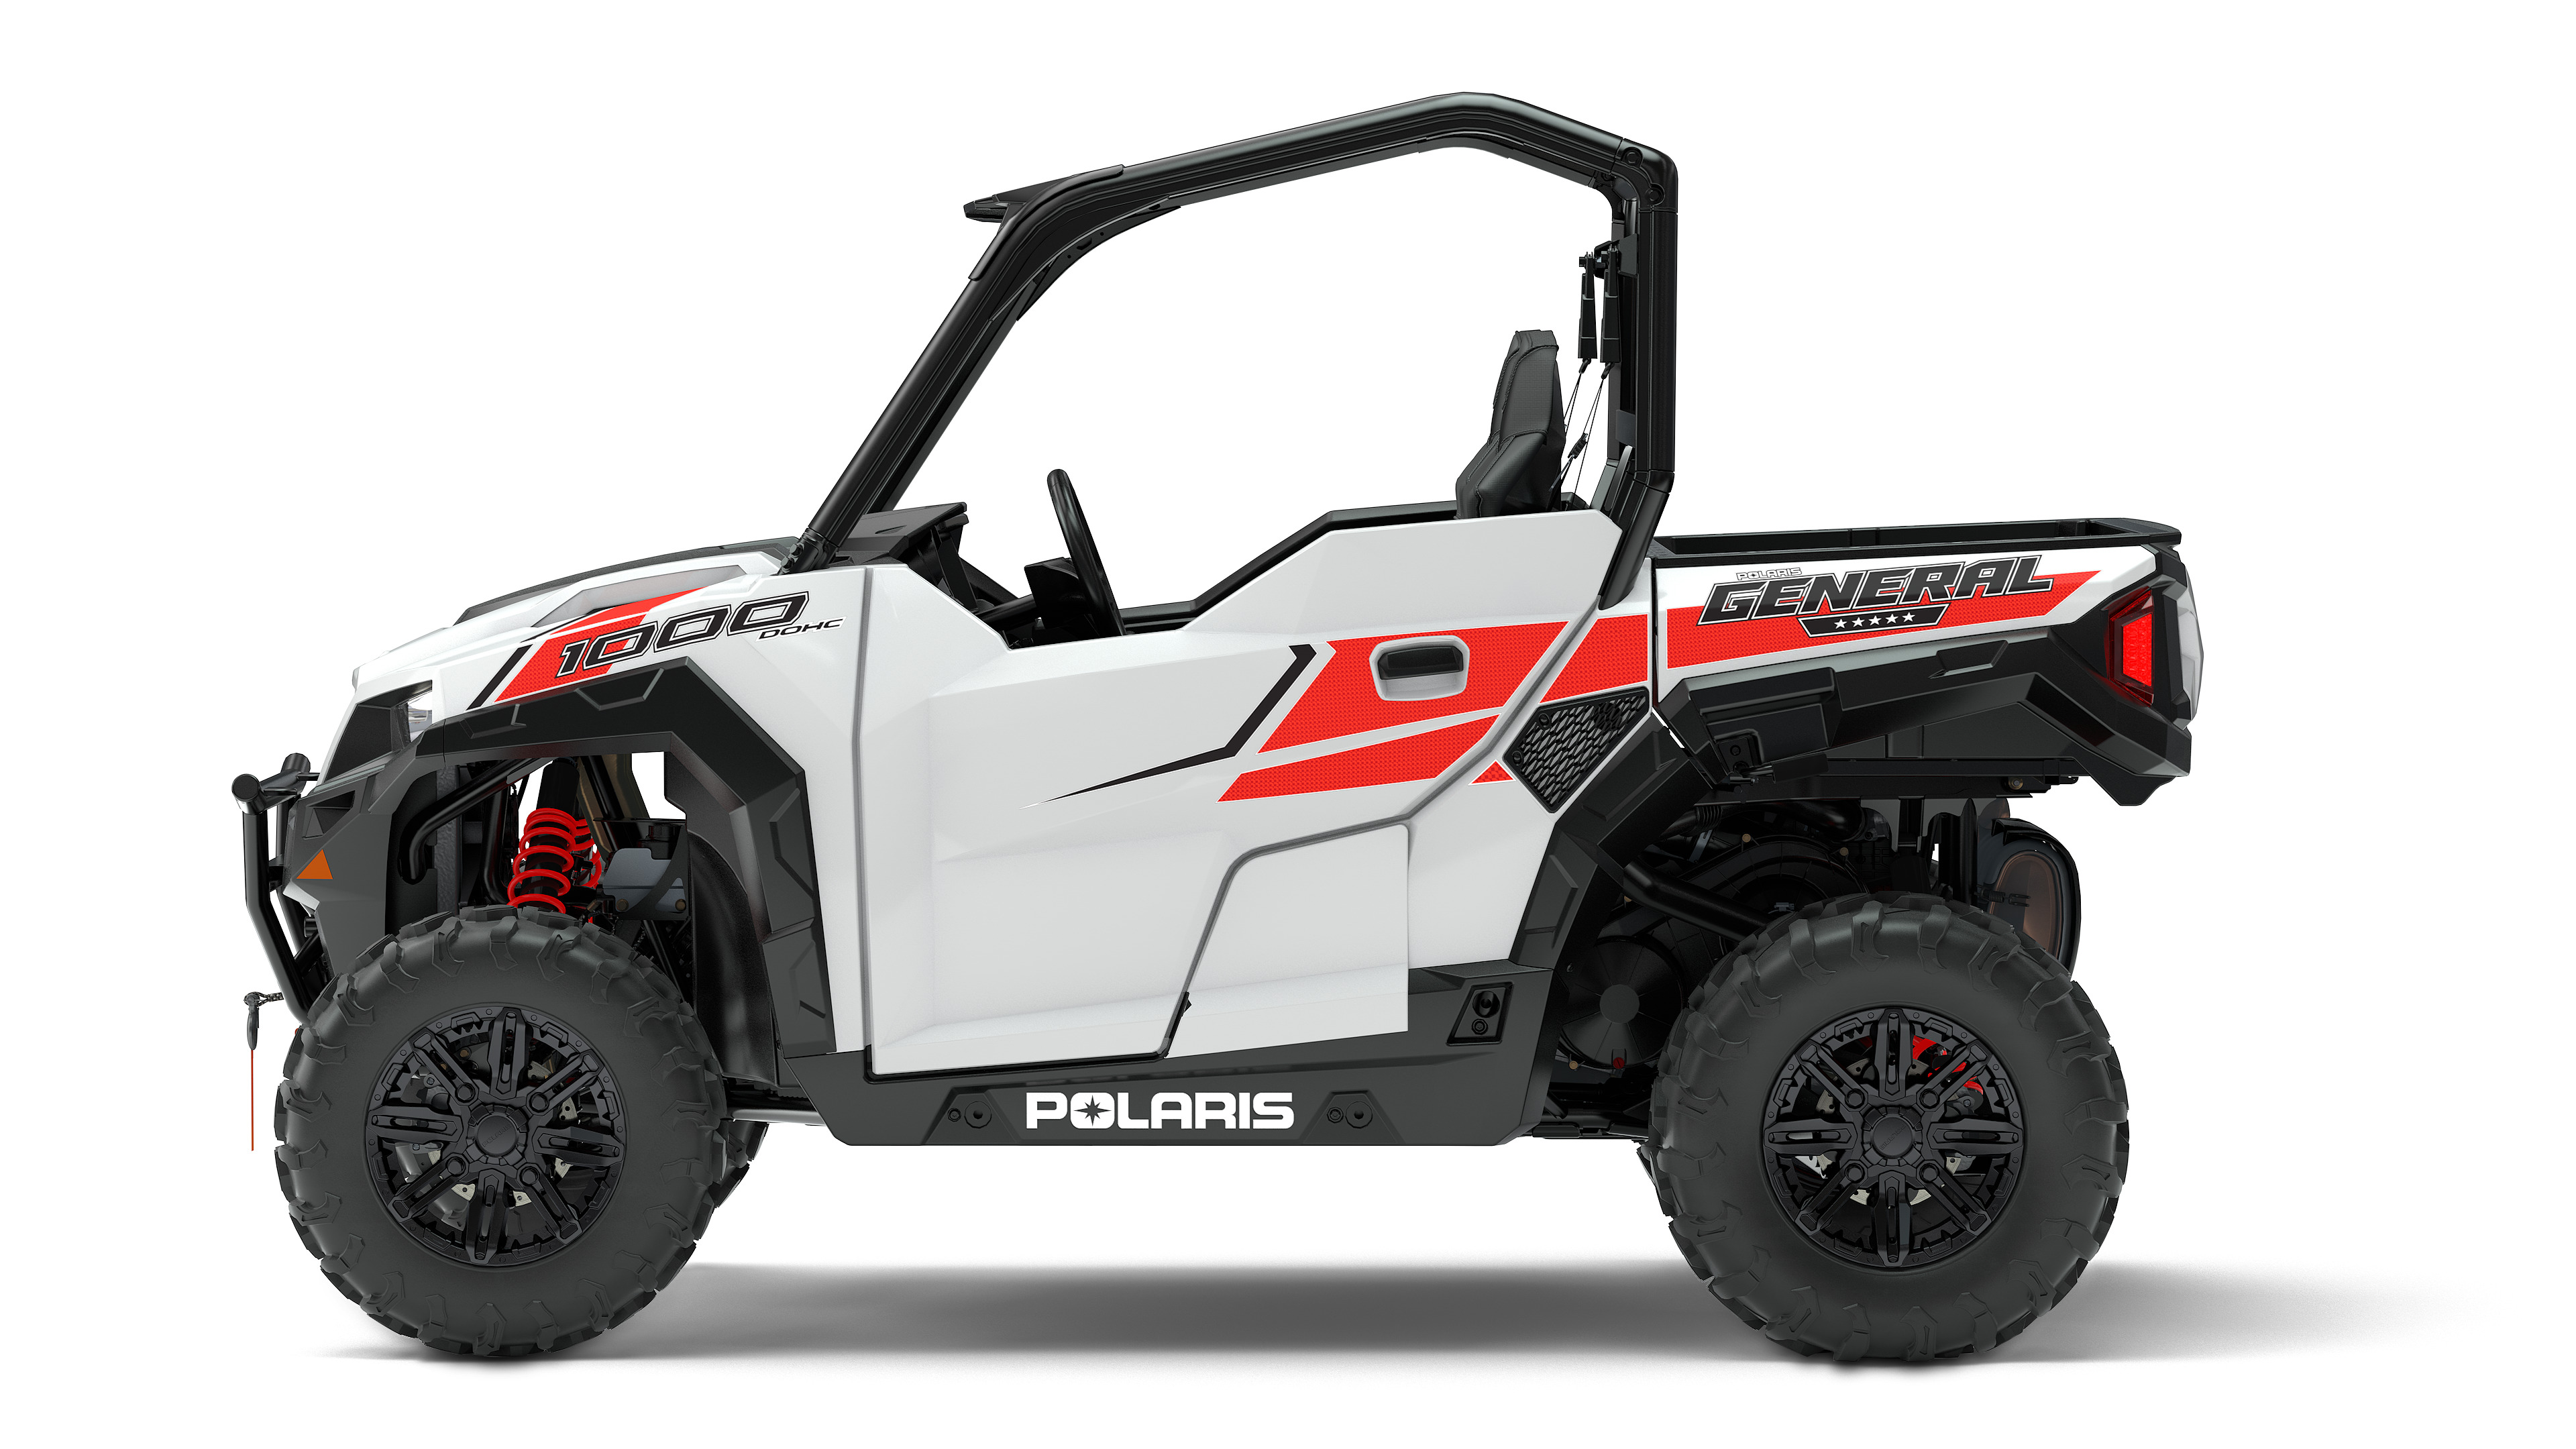 Polaris Recalls Rzr And General Recreational Off Highway